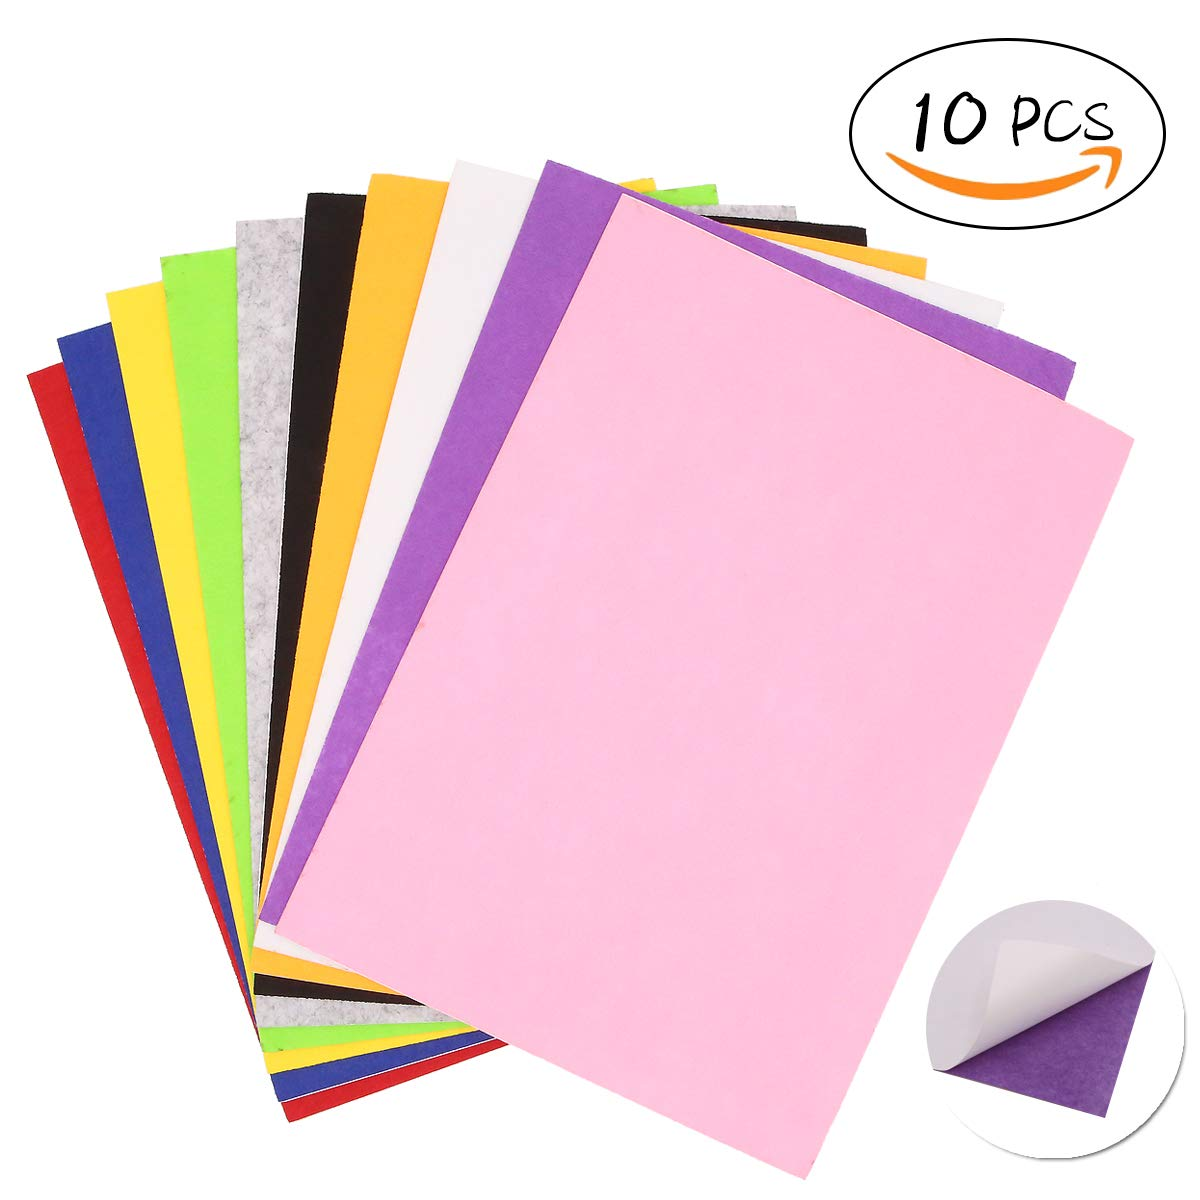 LFS A4 Felt Sheets, Self Adhesive, Assorted Colours, for Arts and Crafts, 10 Pcs